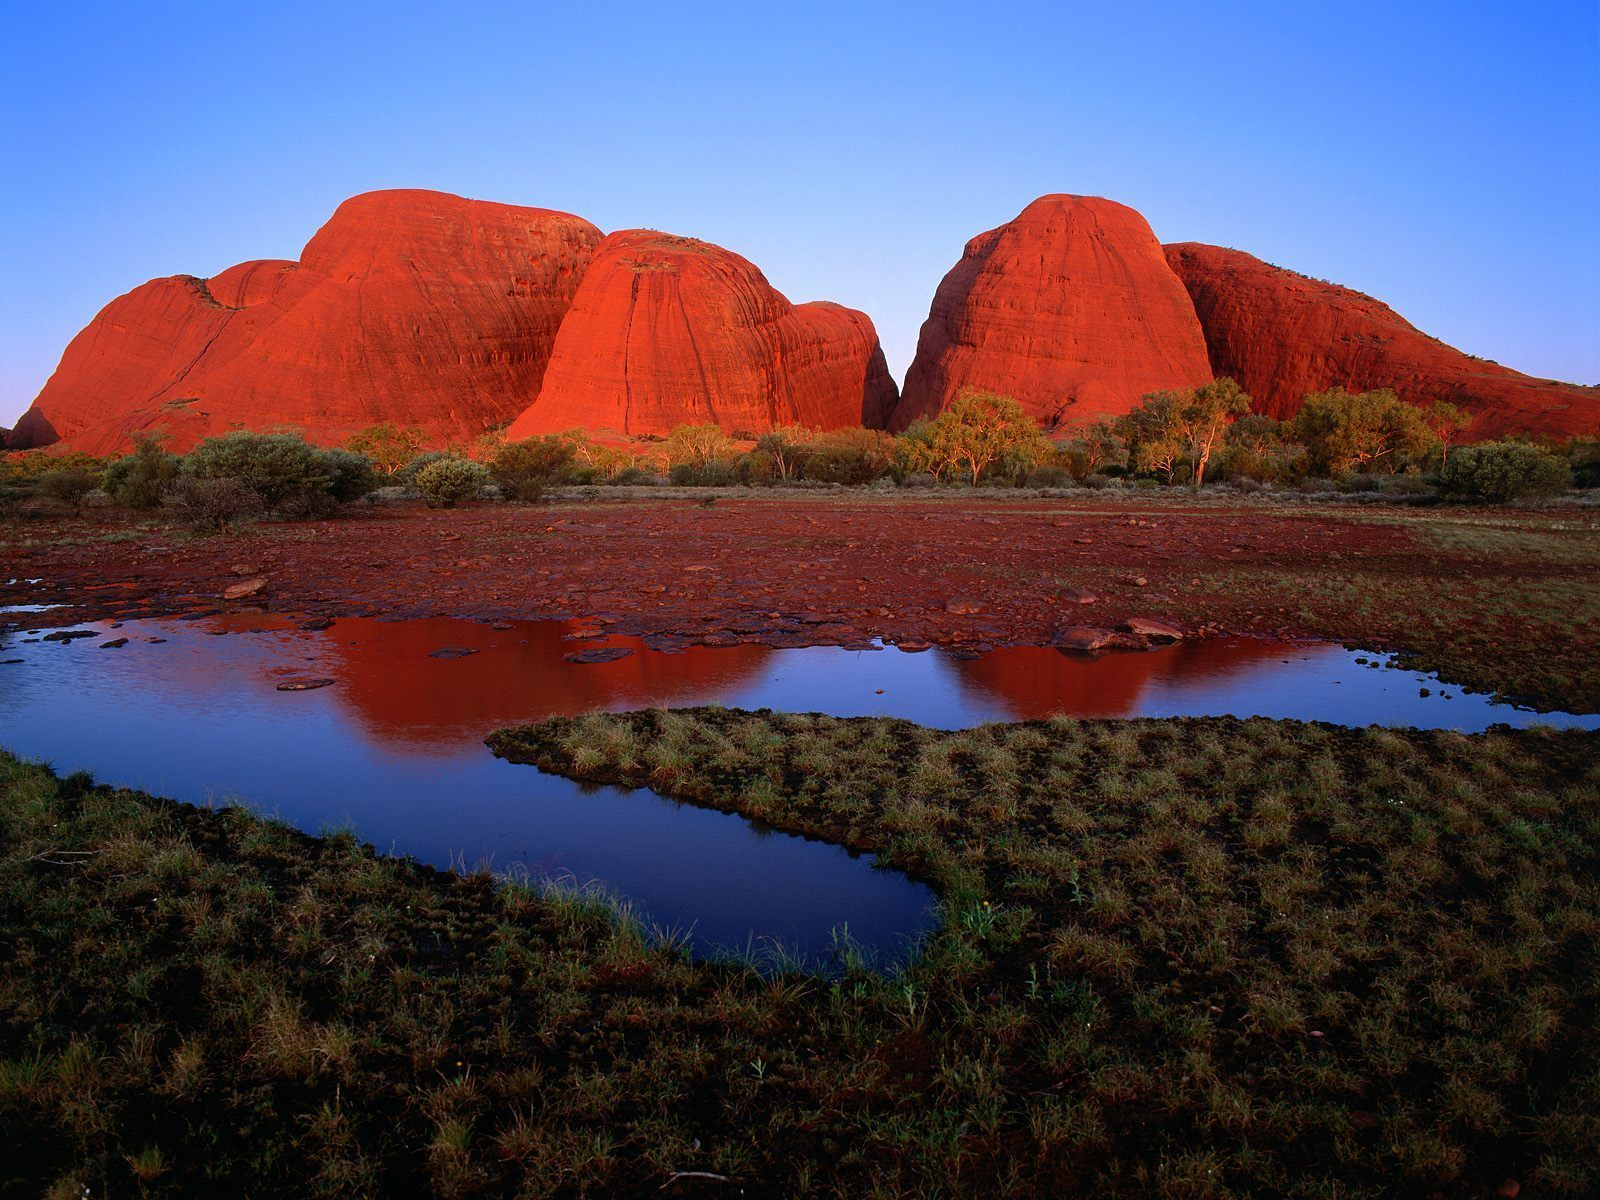 Kata_Tjuta_The_Olgas_at_Sunset_UluruKata_Tjuta_National_Park_Australia